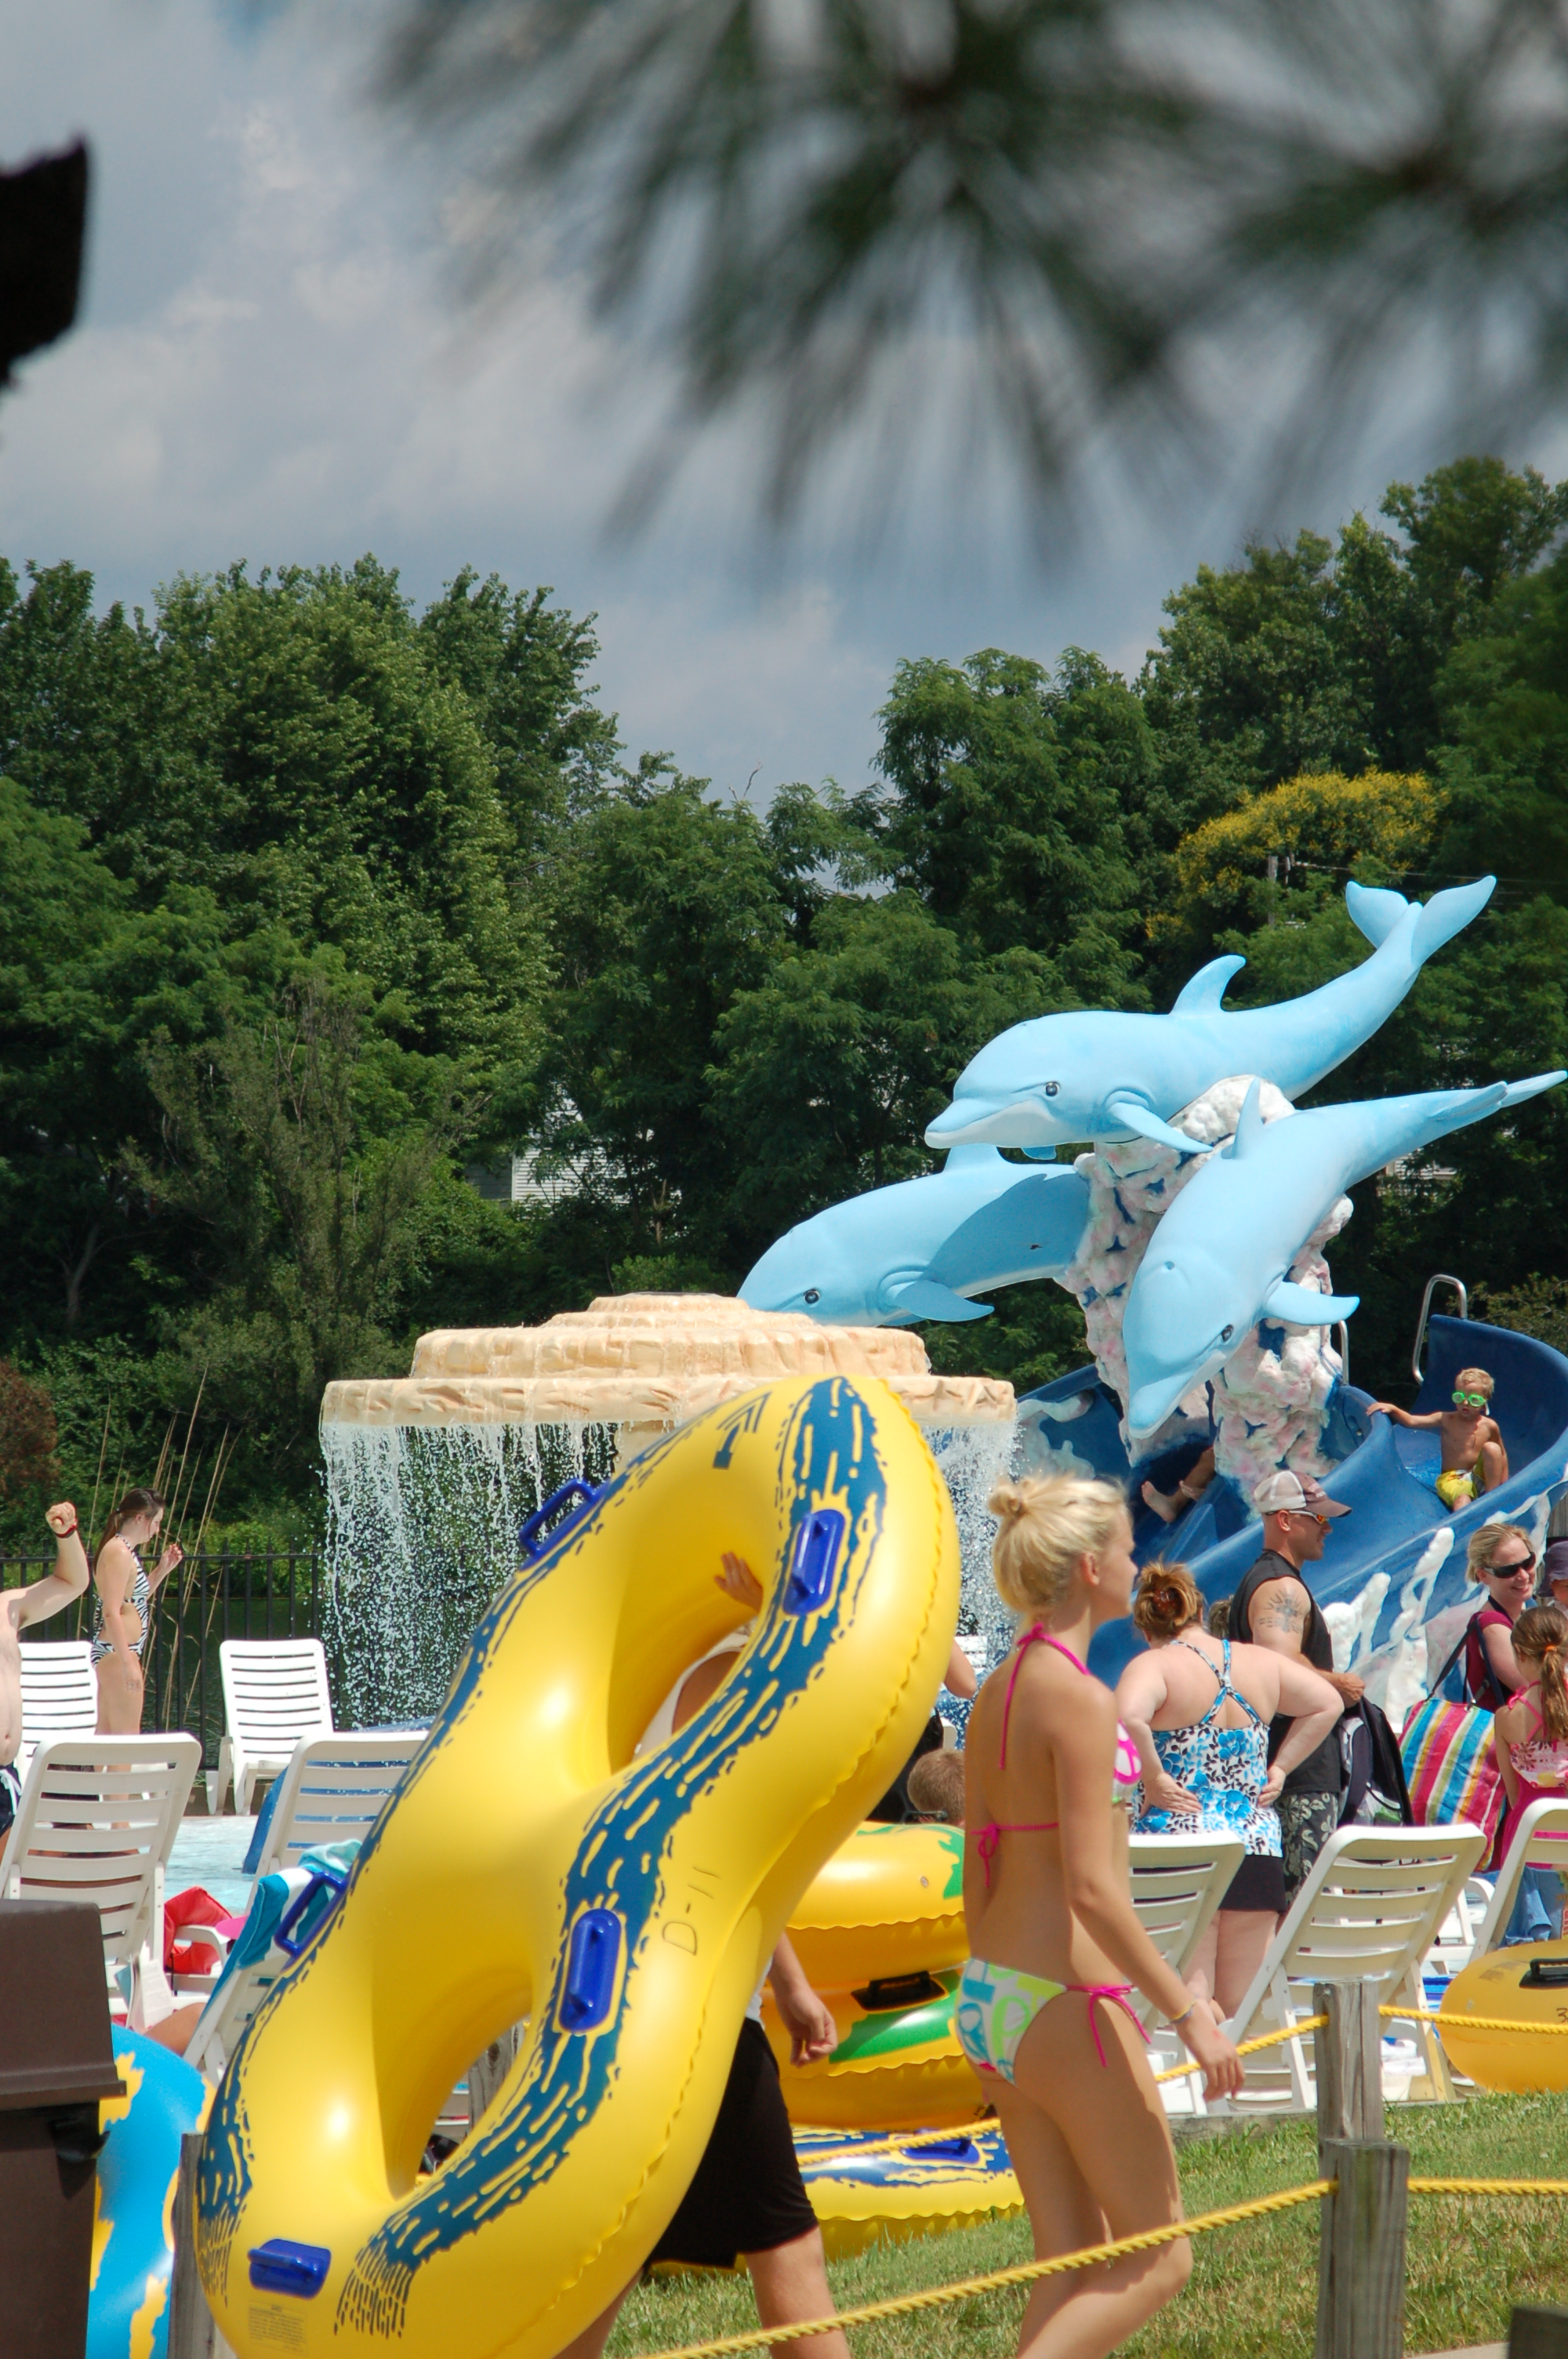 Dolphion slide at Atlantis Water Park